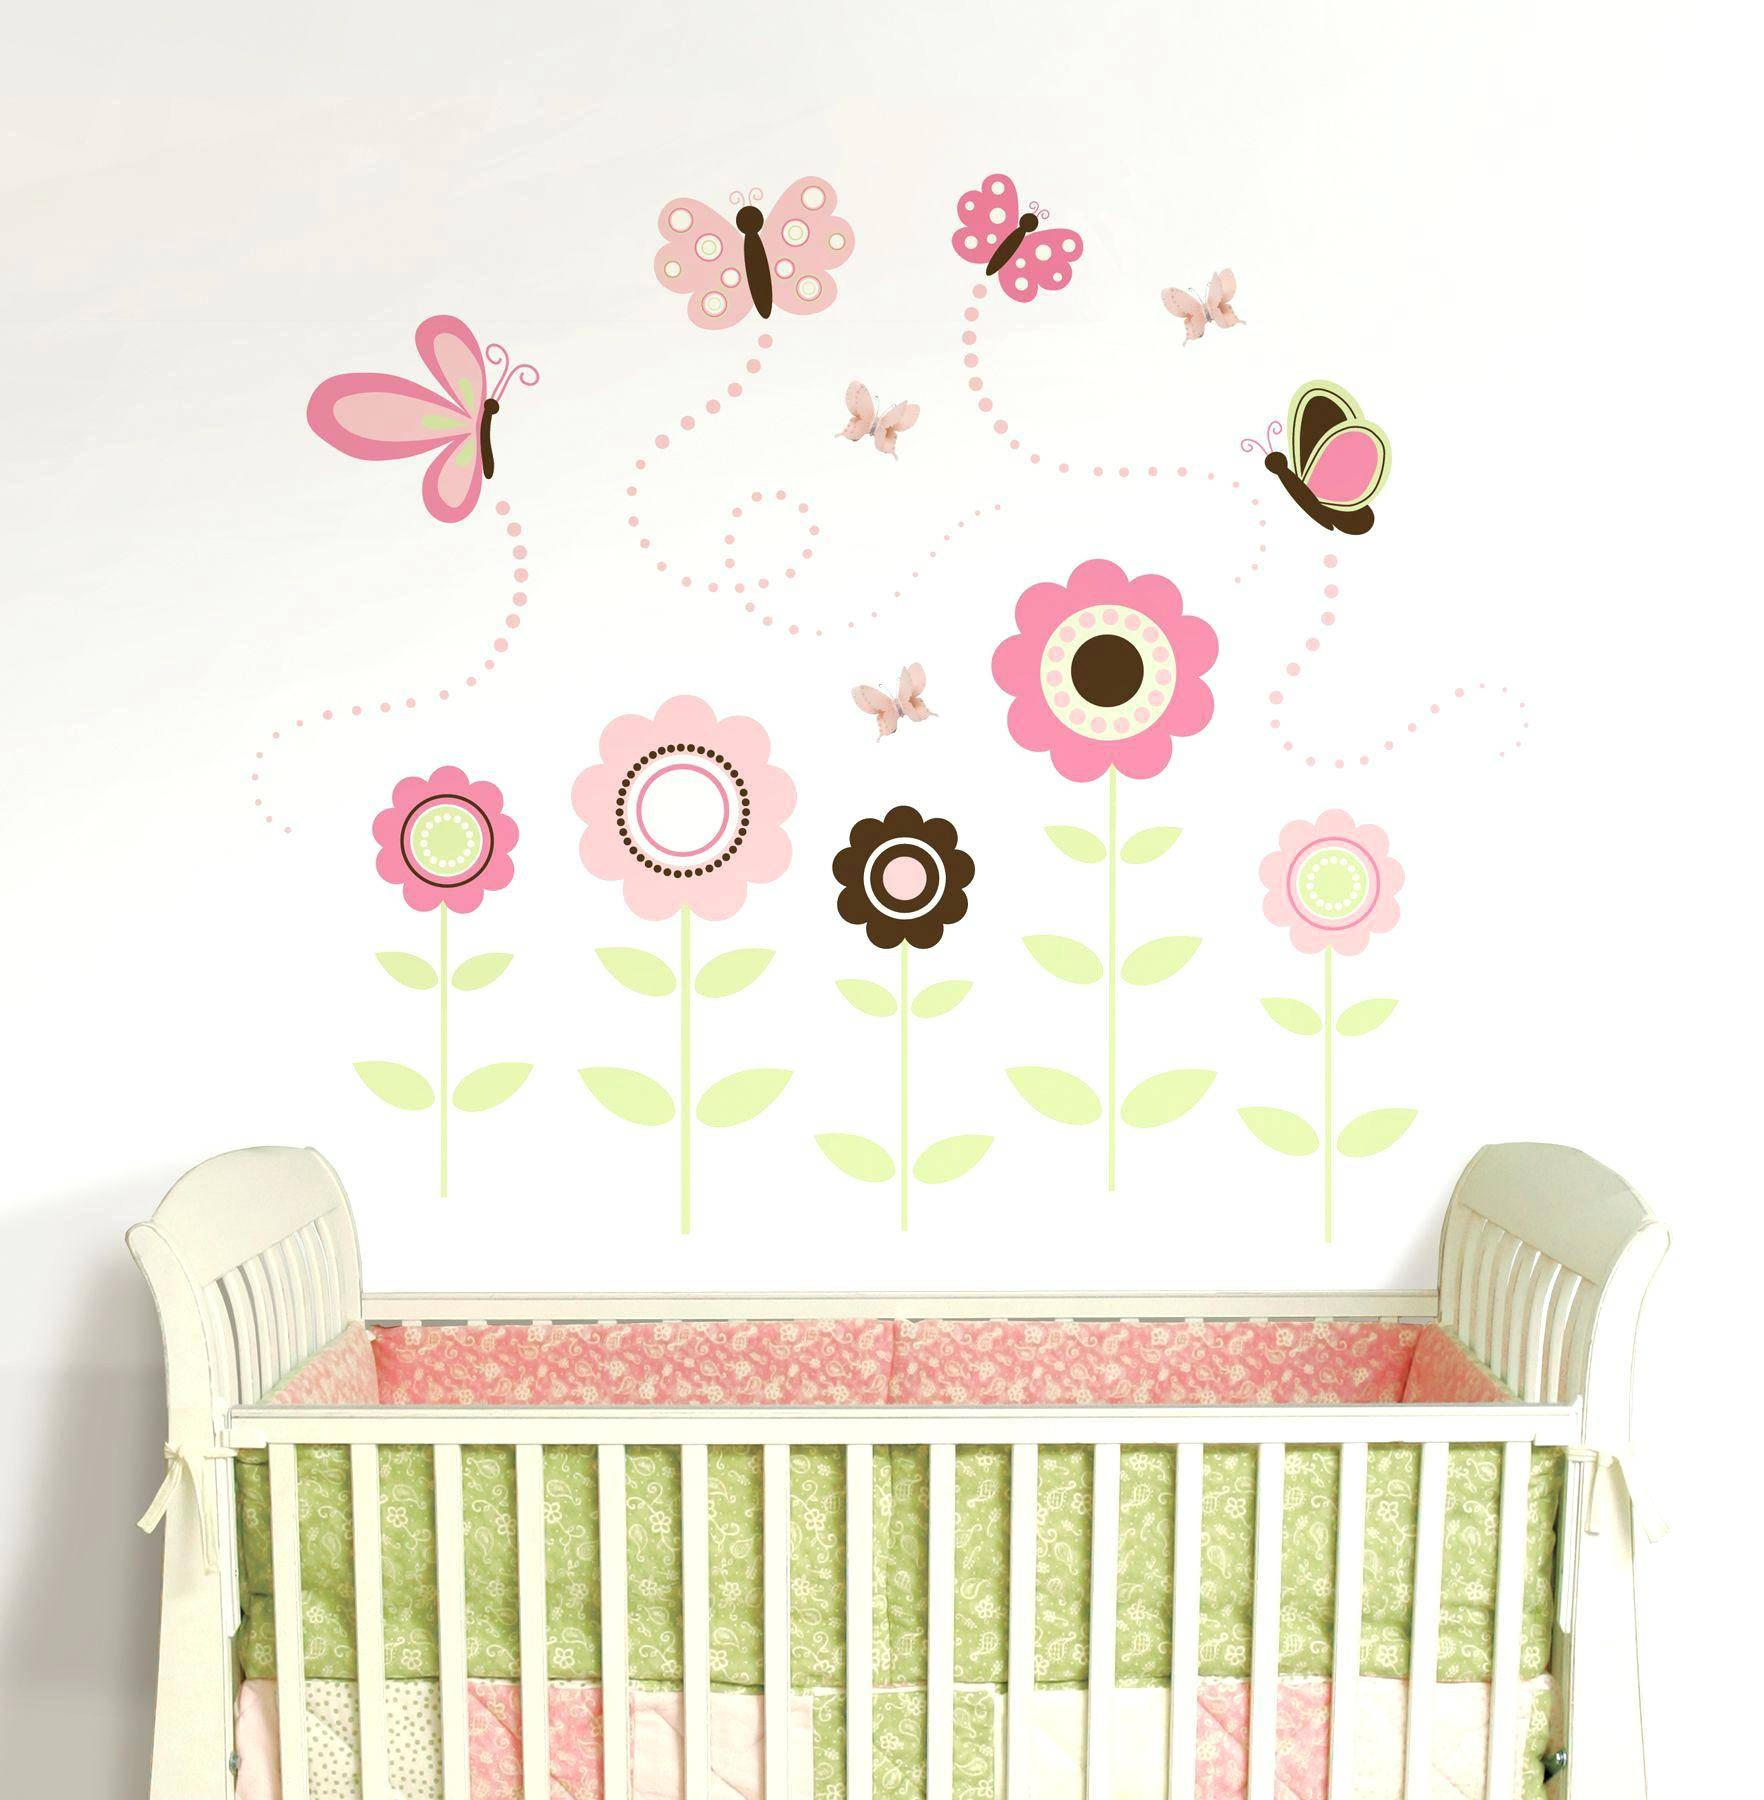 Pink Butterfly Wall Decals Butterfly Garden Wall Art Sticker Kit Within Recent Pink Butterfly Wall Art (View 18 of 20)